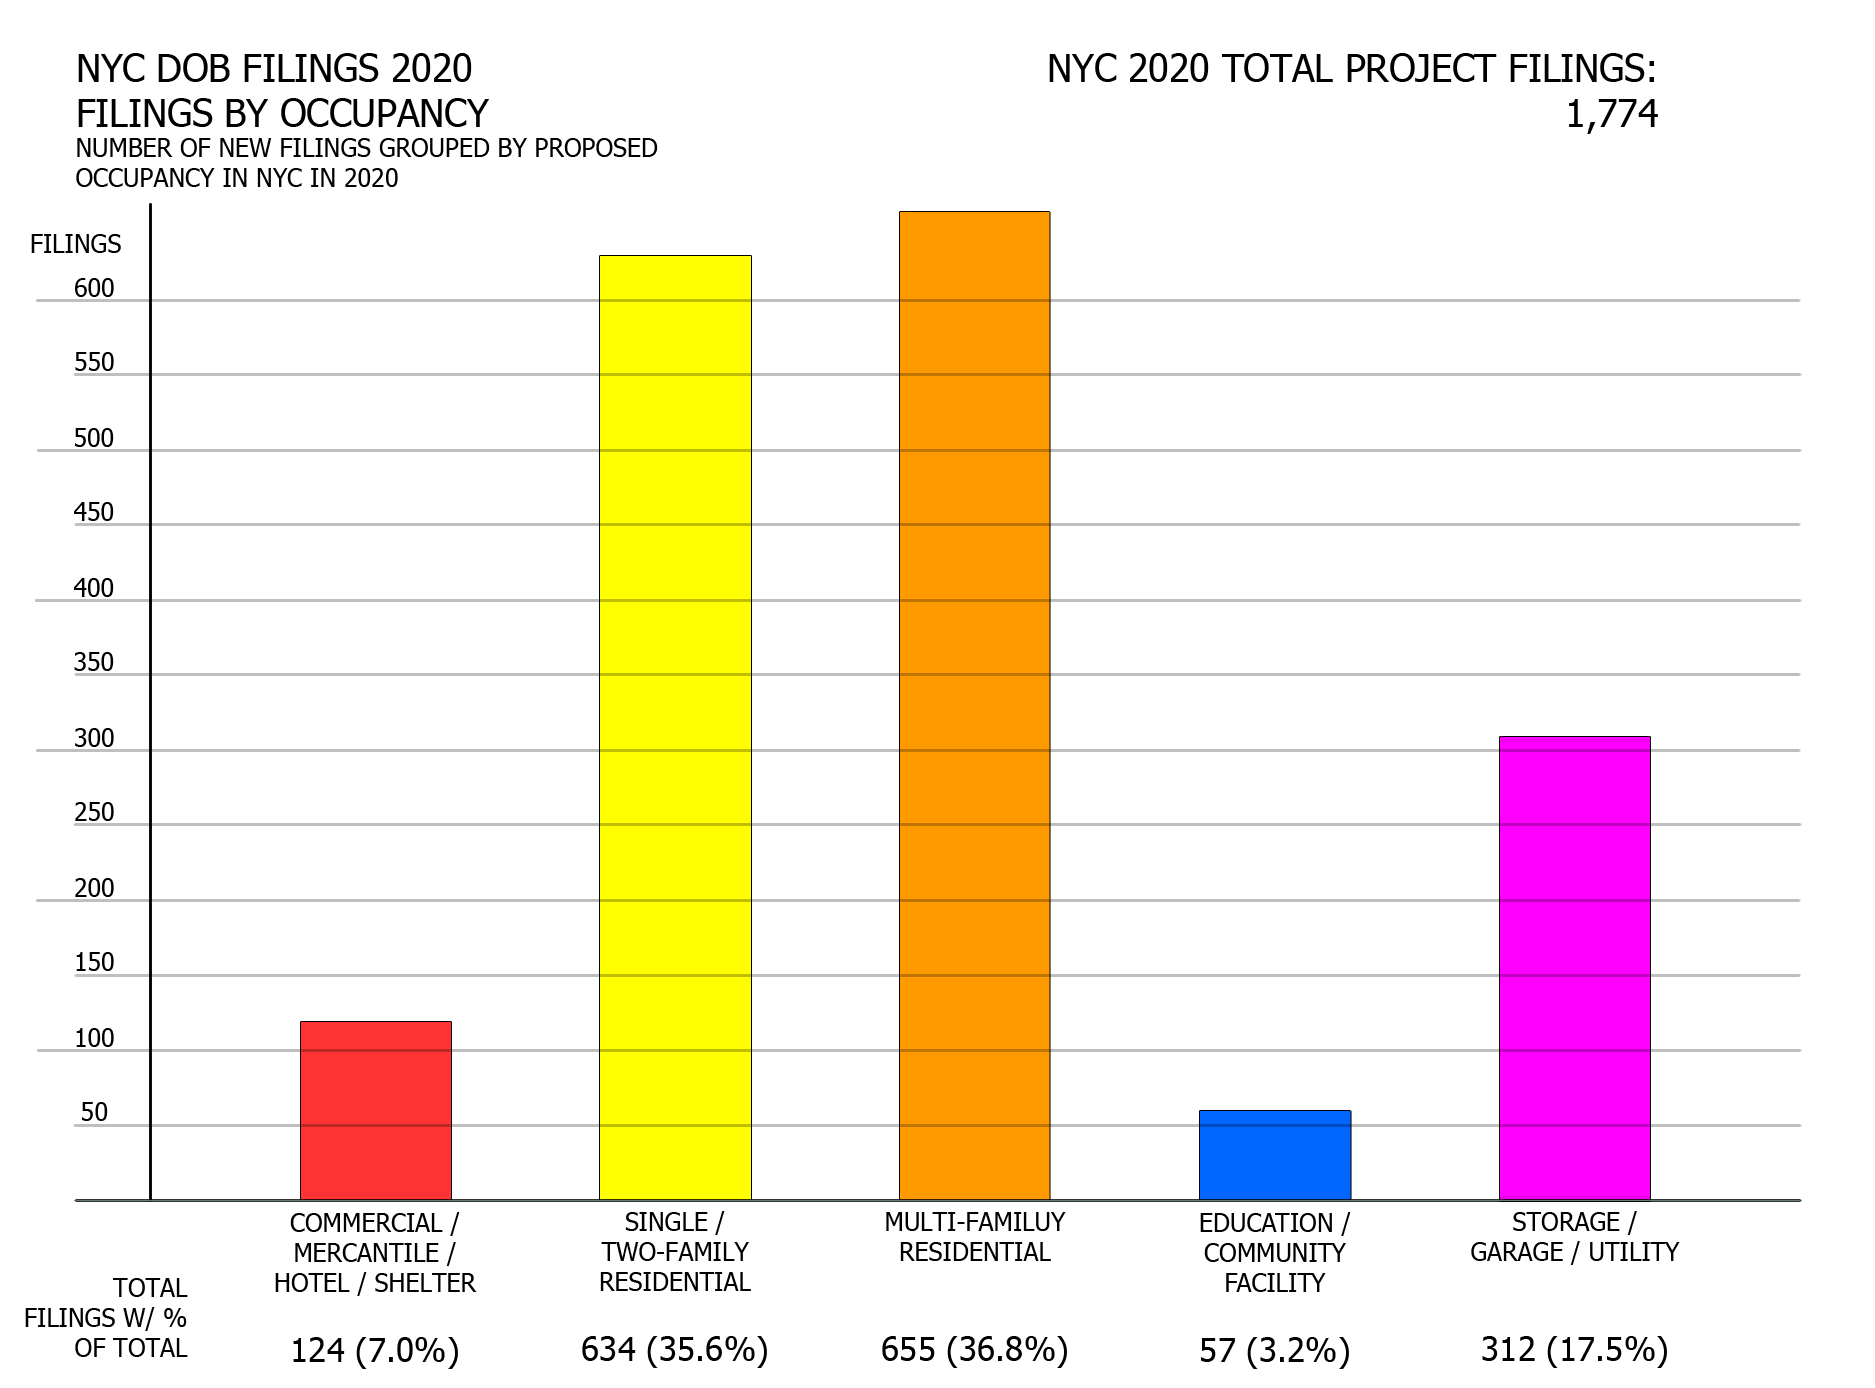 NYC DOB filings in 2020 by occupancy filings. Credit: Vitali Ogorodnikov